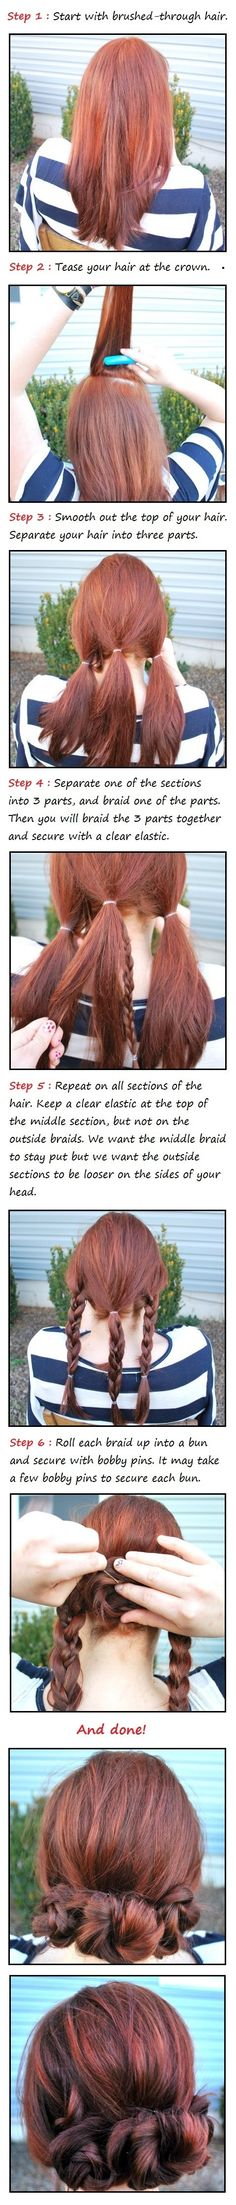 The three Braided Buns Hair Tutorial for ladies with longer hair or single braids. Very cute style for work, date or casual day of shopping and running errands. - Beauty Darling